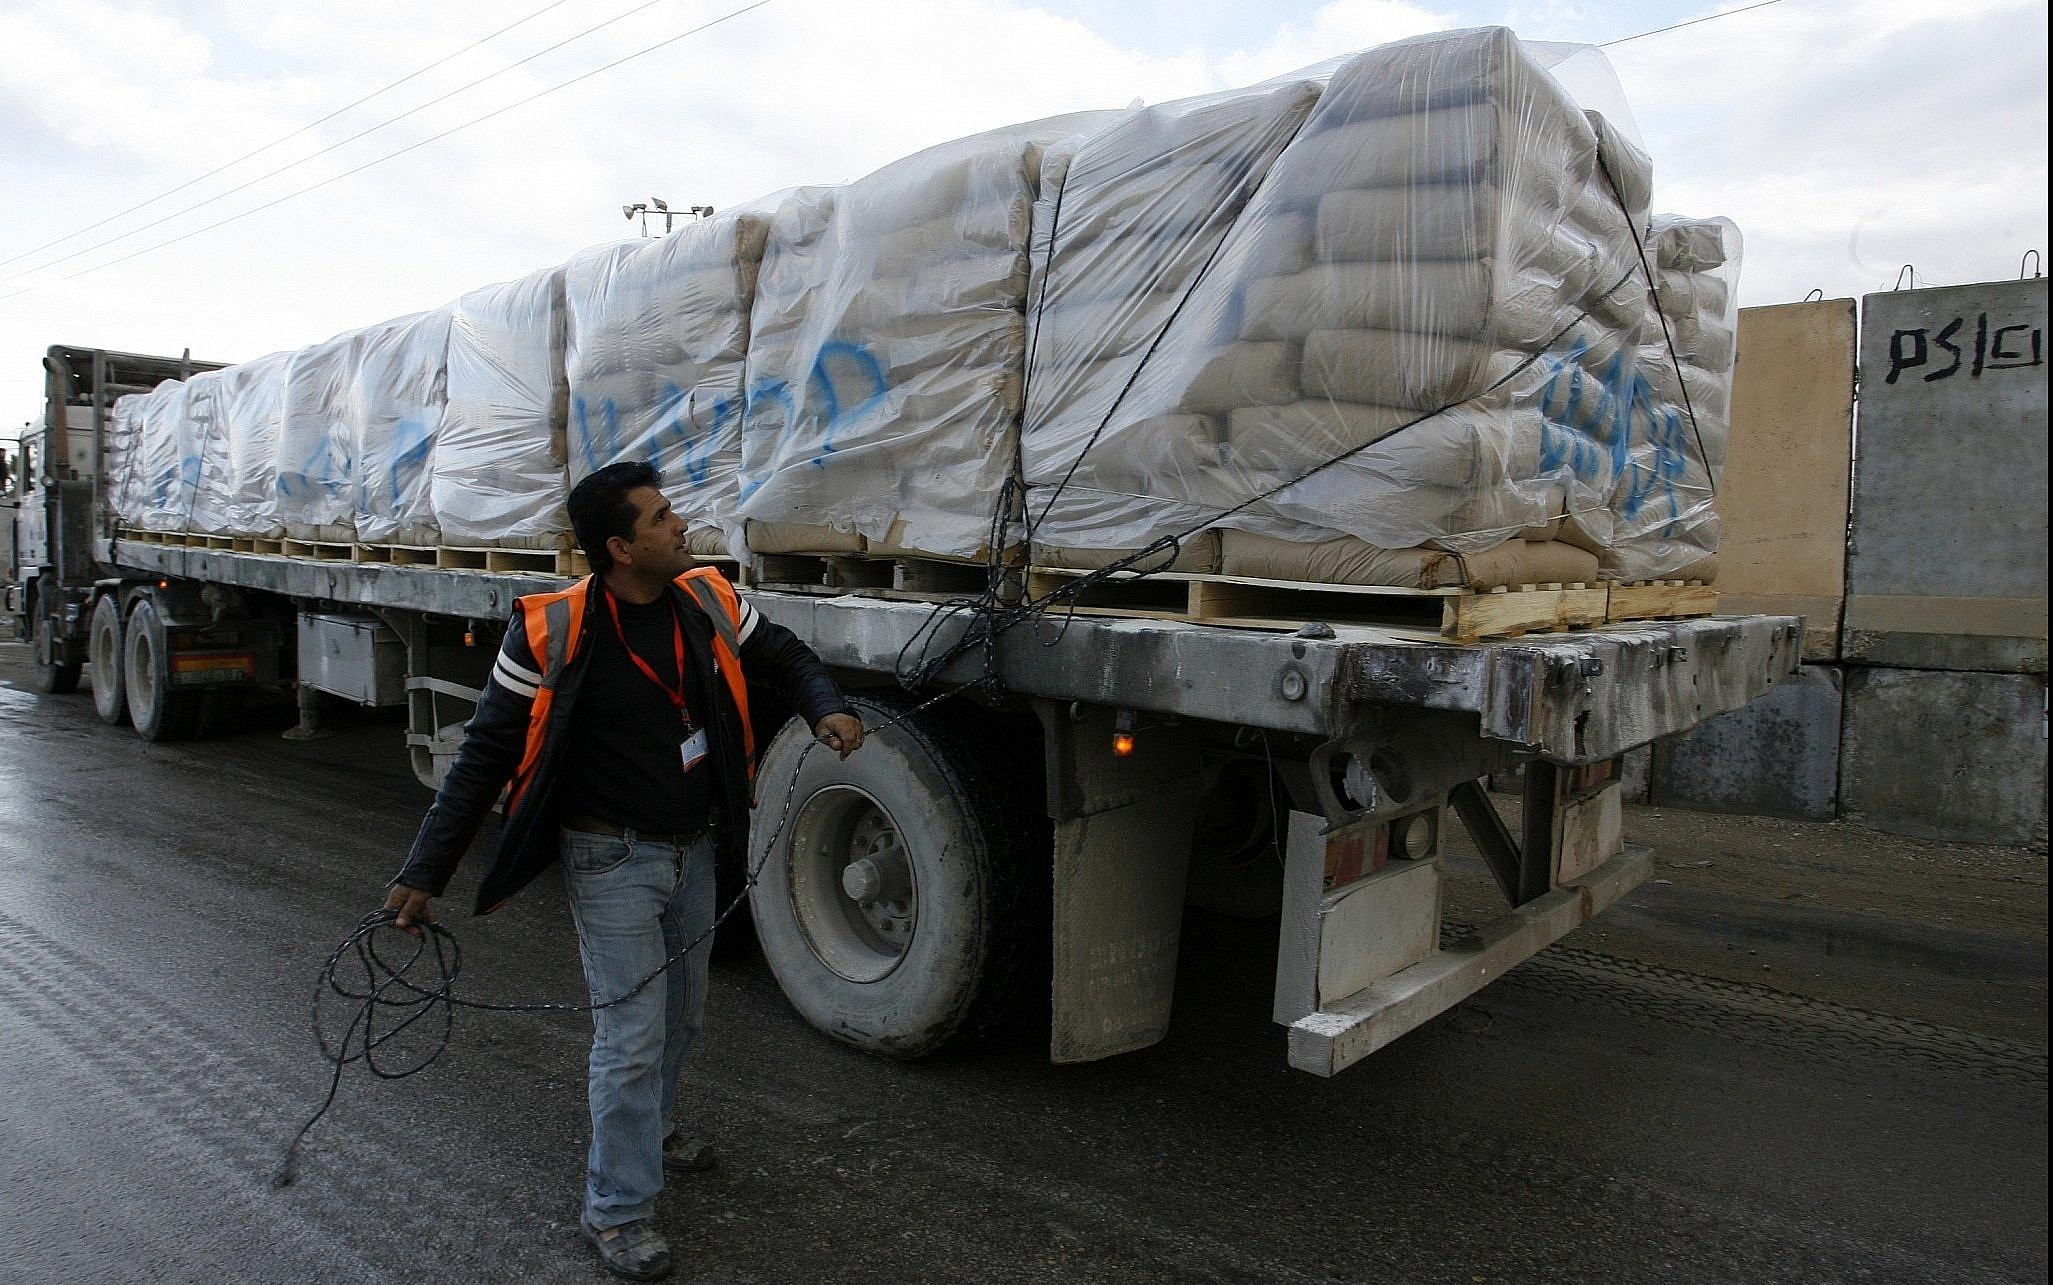 UN trucks carrying building materials for projects funded by UNRWA arrive in Rafah in the southern Gaza Strip after crossing the Israeli Kerem Shalom crossing